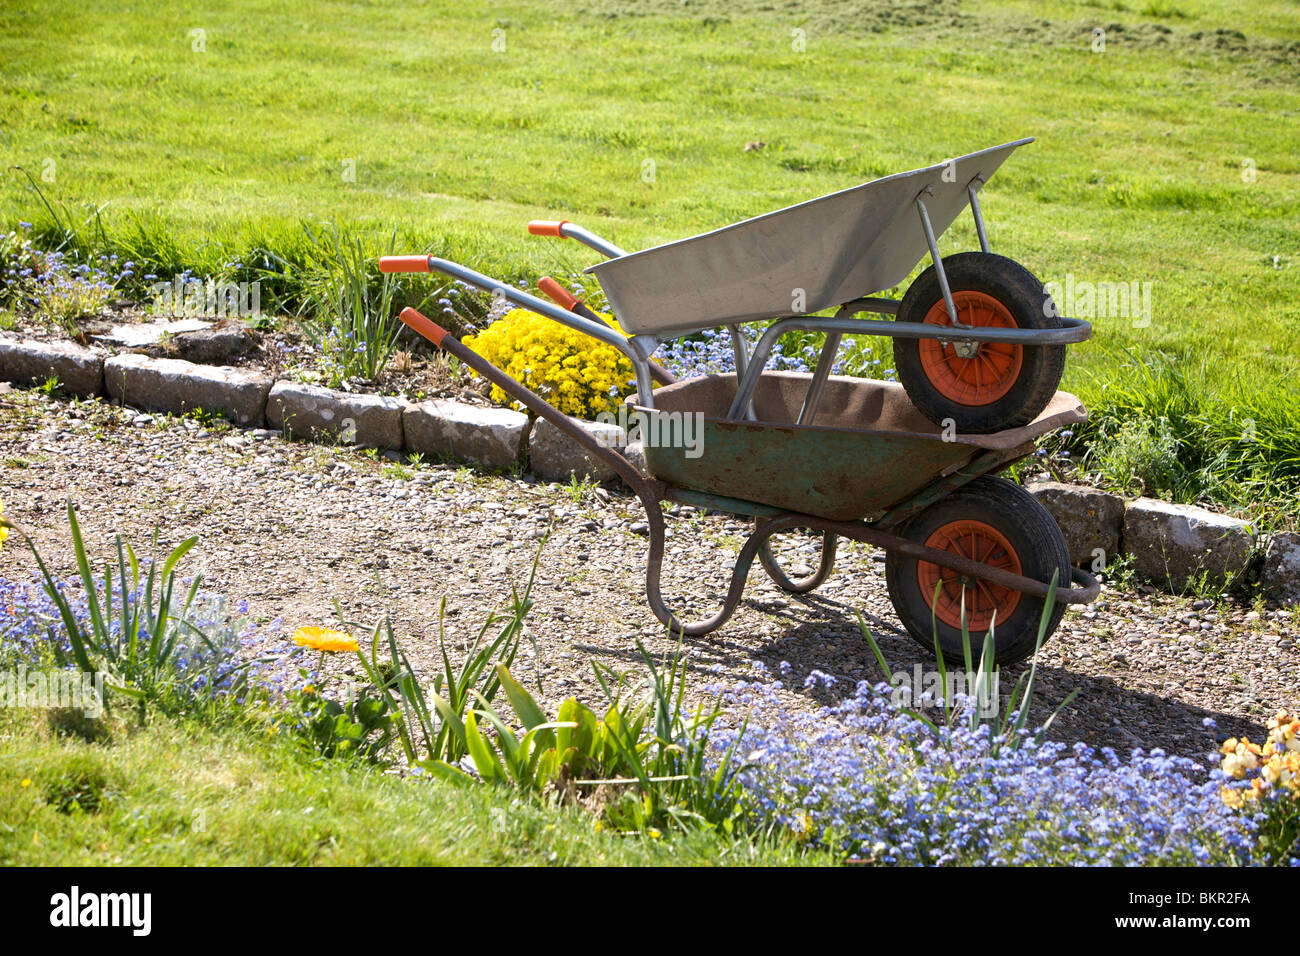 Wheelbarrows stacked in an English country garden - Stock Image